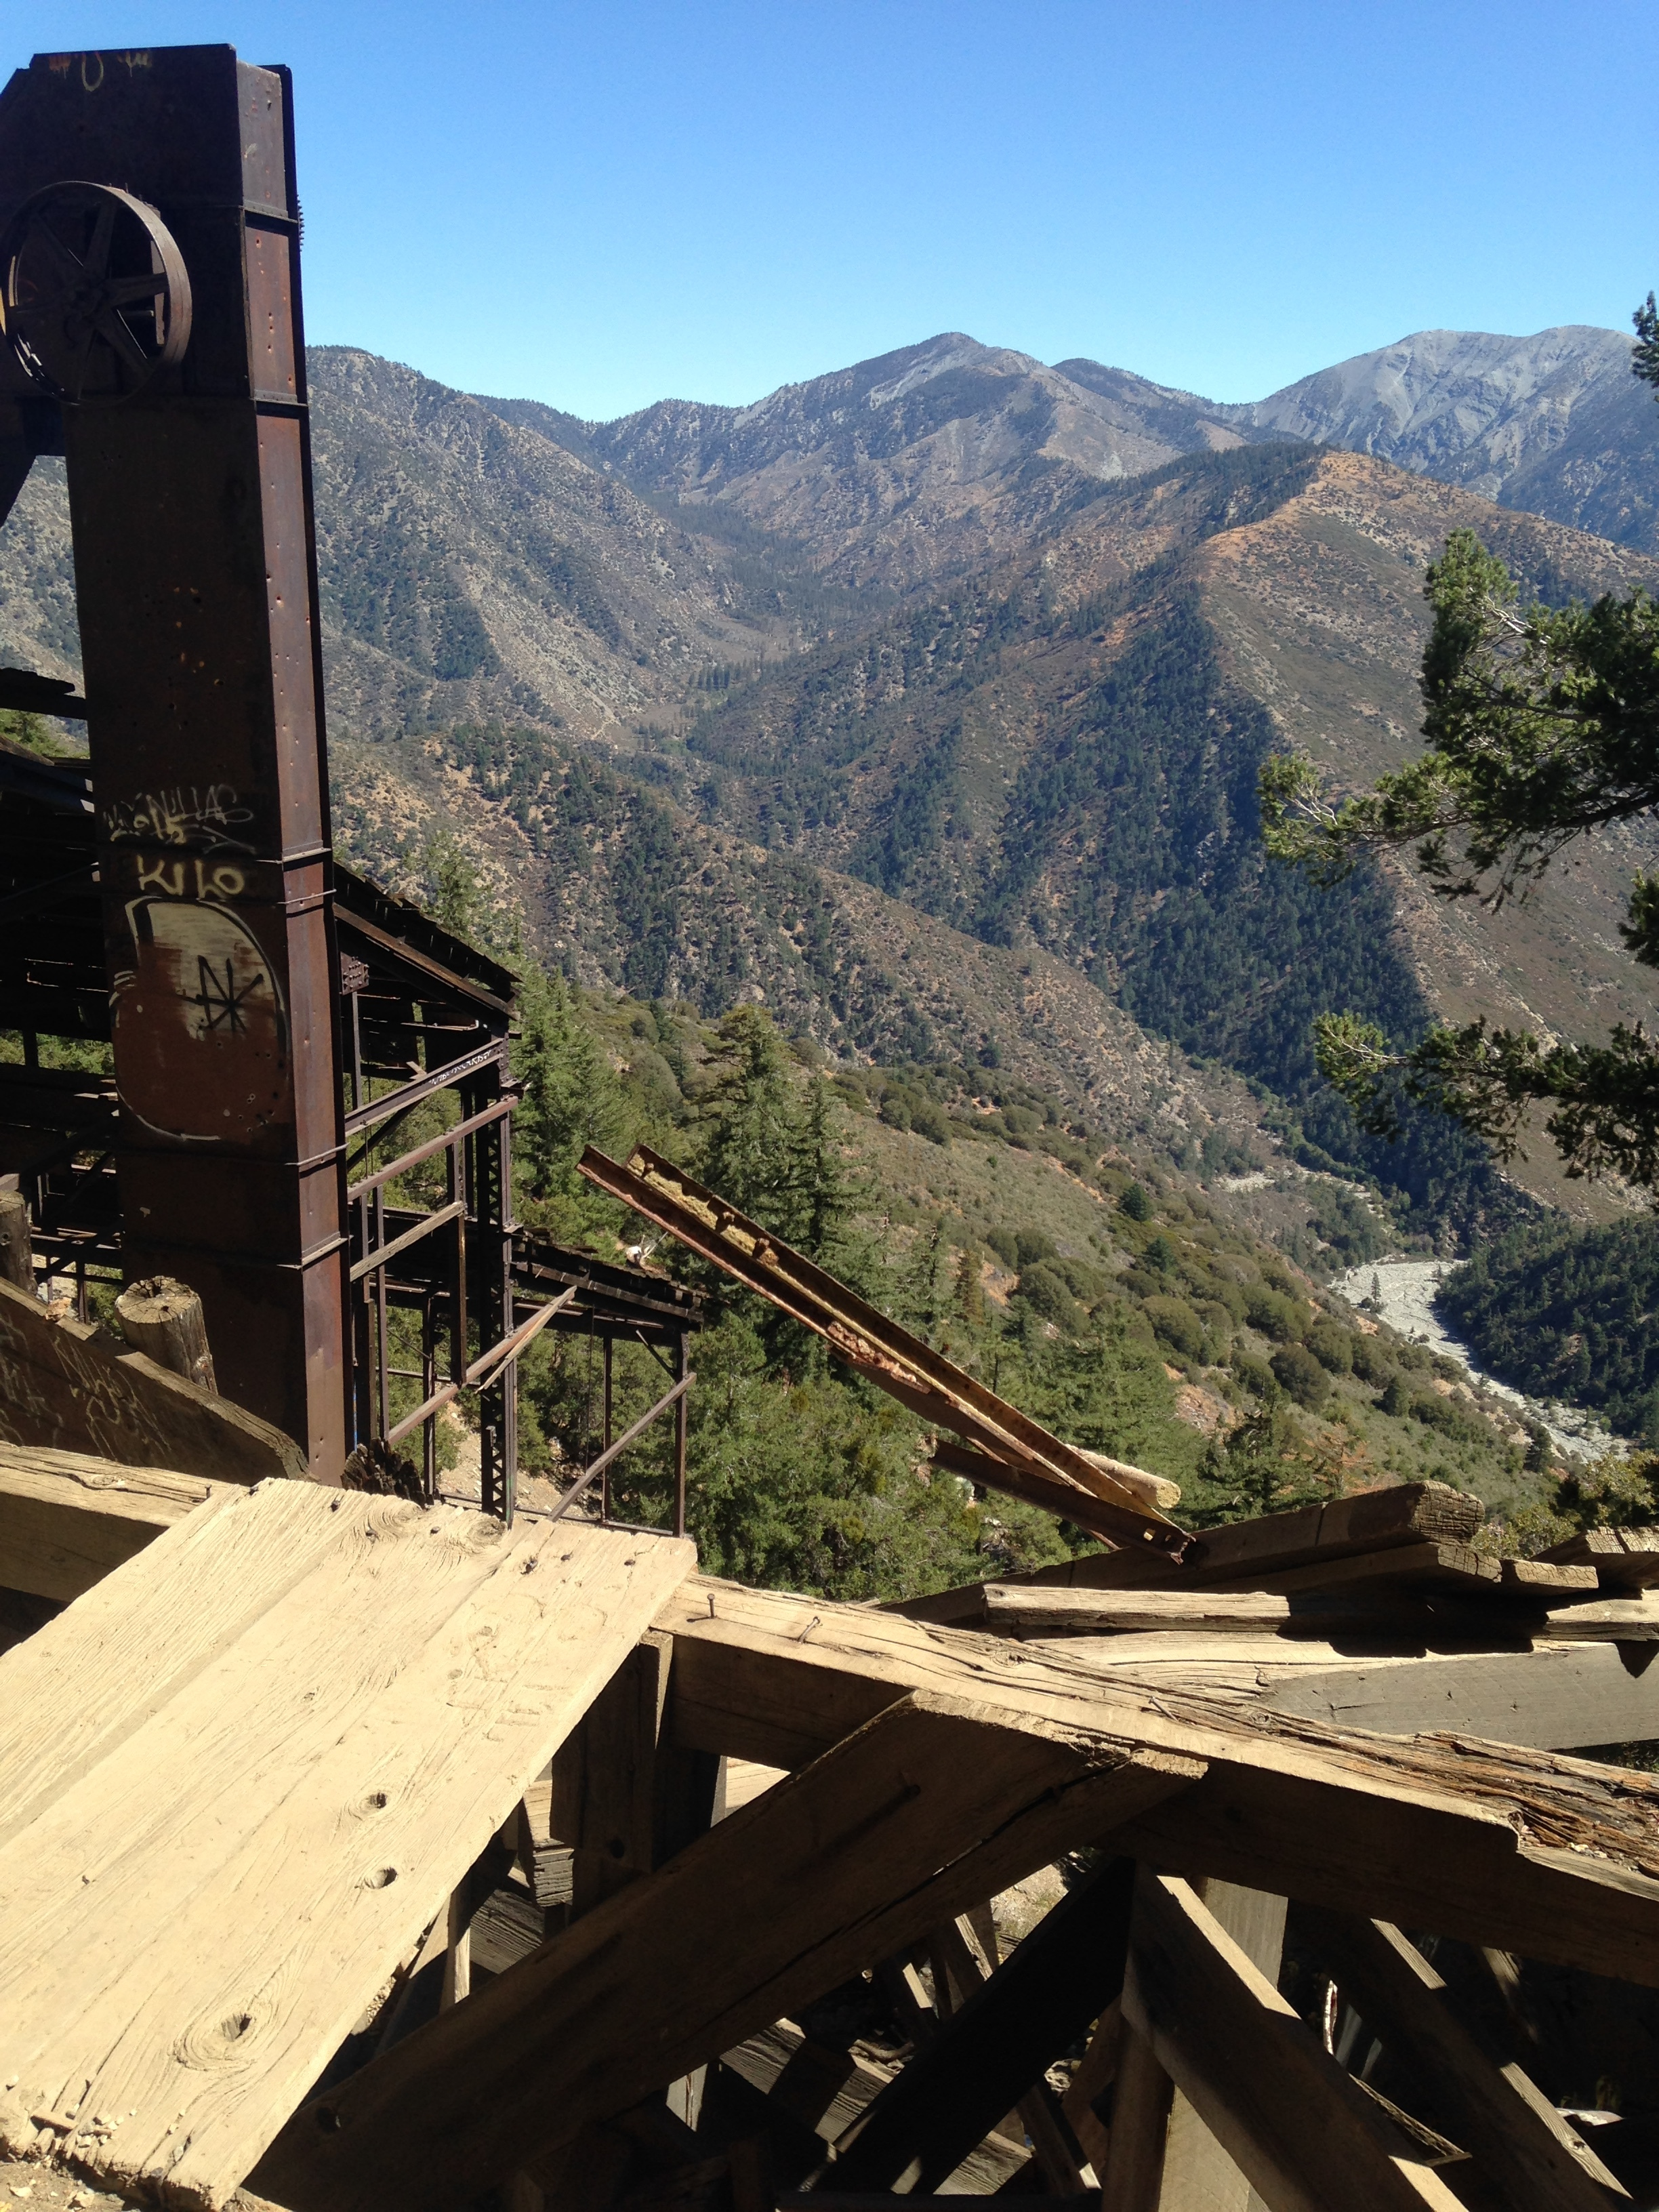 You had to climb what was left of the mine's structural support to get to the tunnels, but once you got up there it was definitely a great sight. Fun fact, while I was climbing up the steel beams I cut my head on a beam I didn't see. It felt amazing........